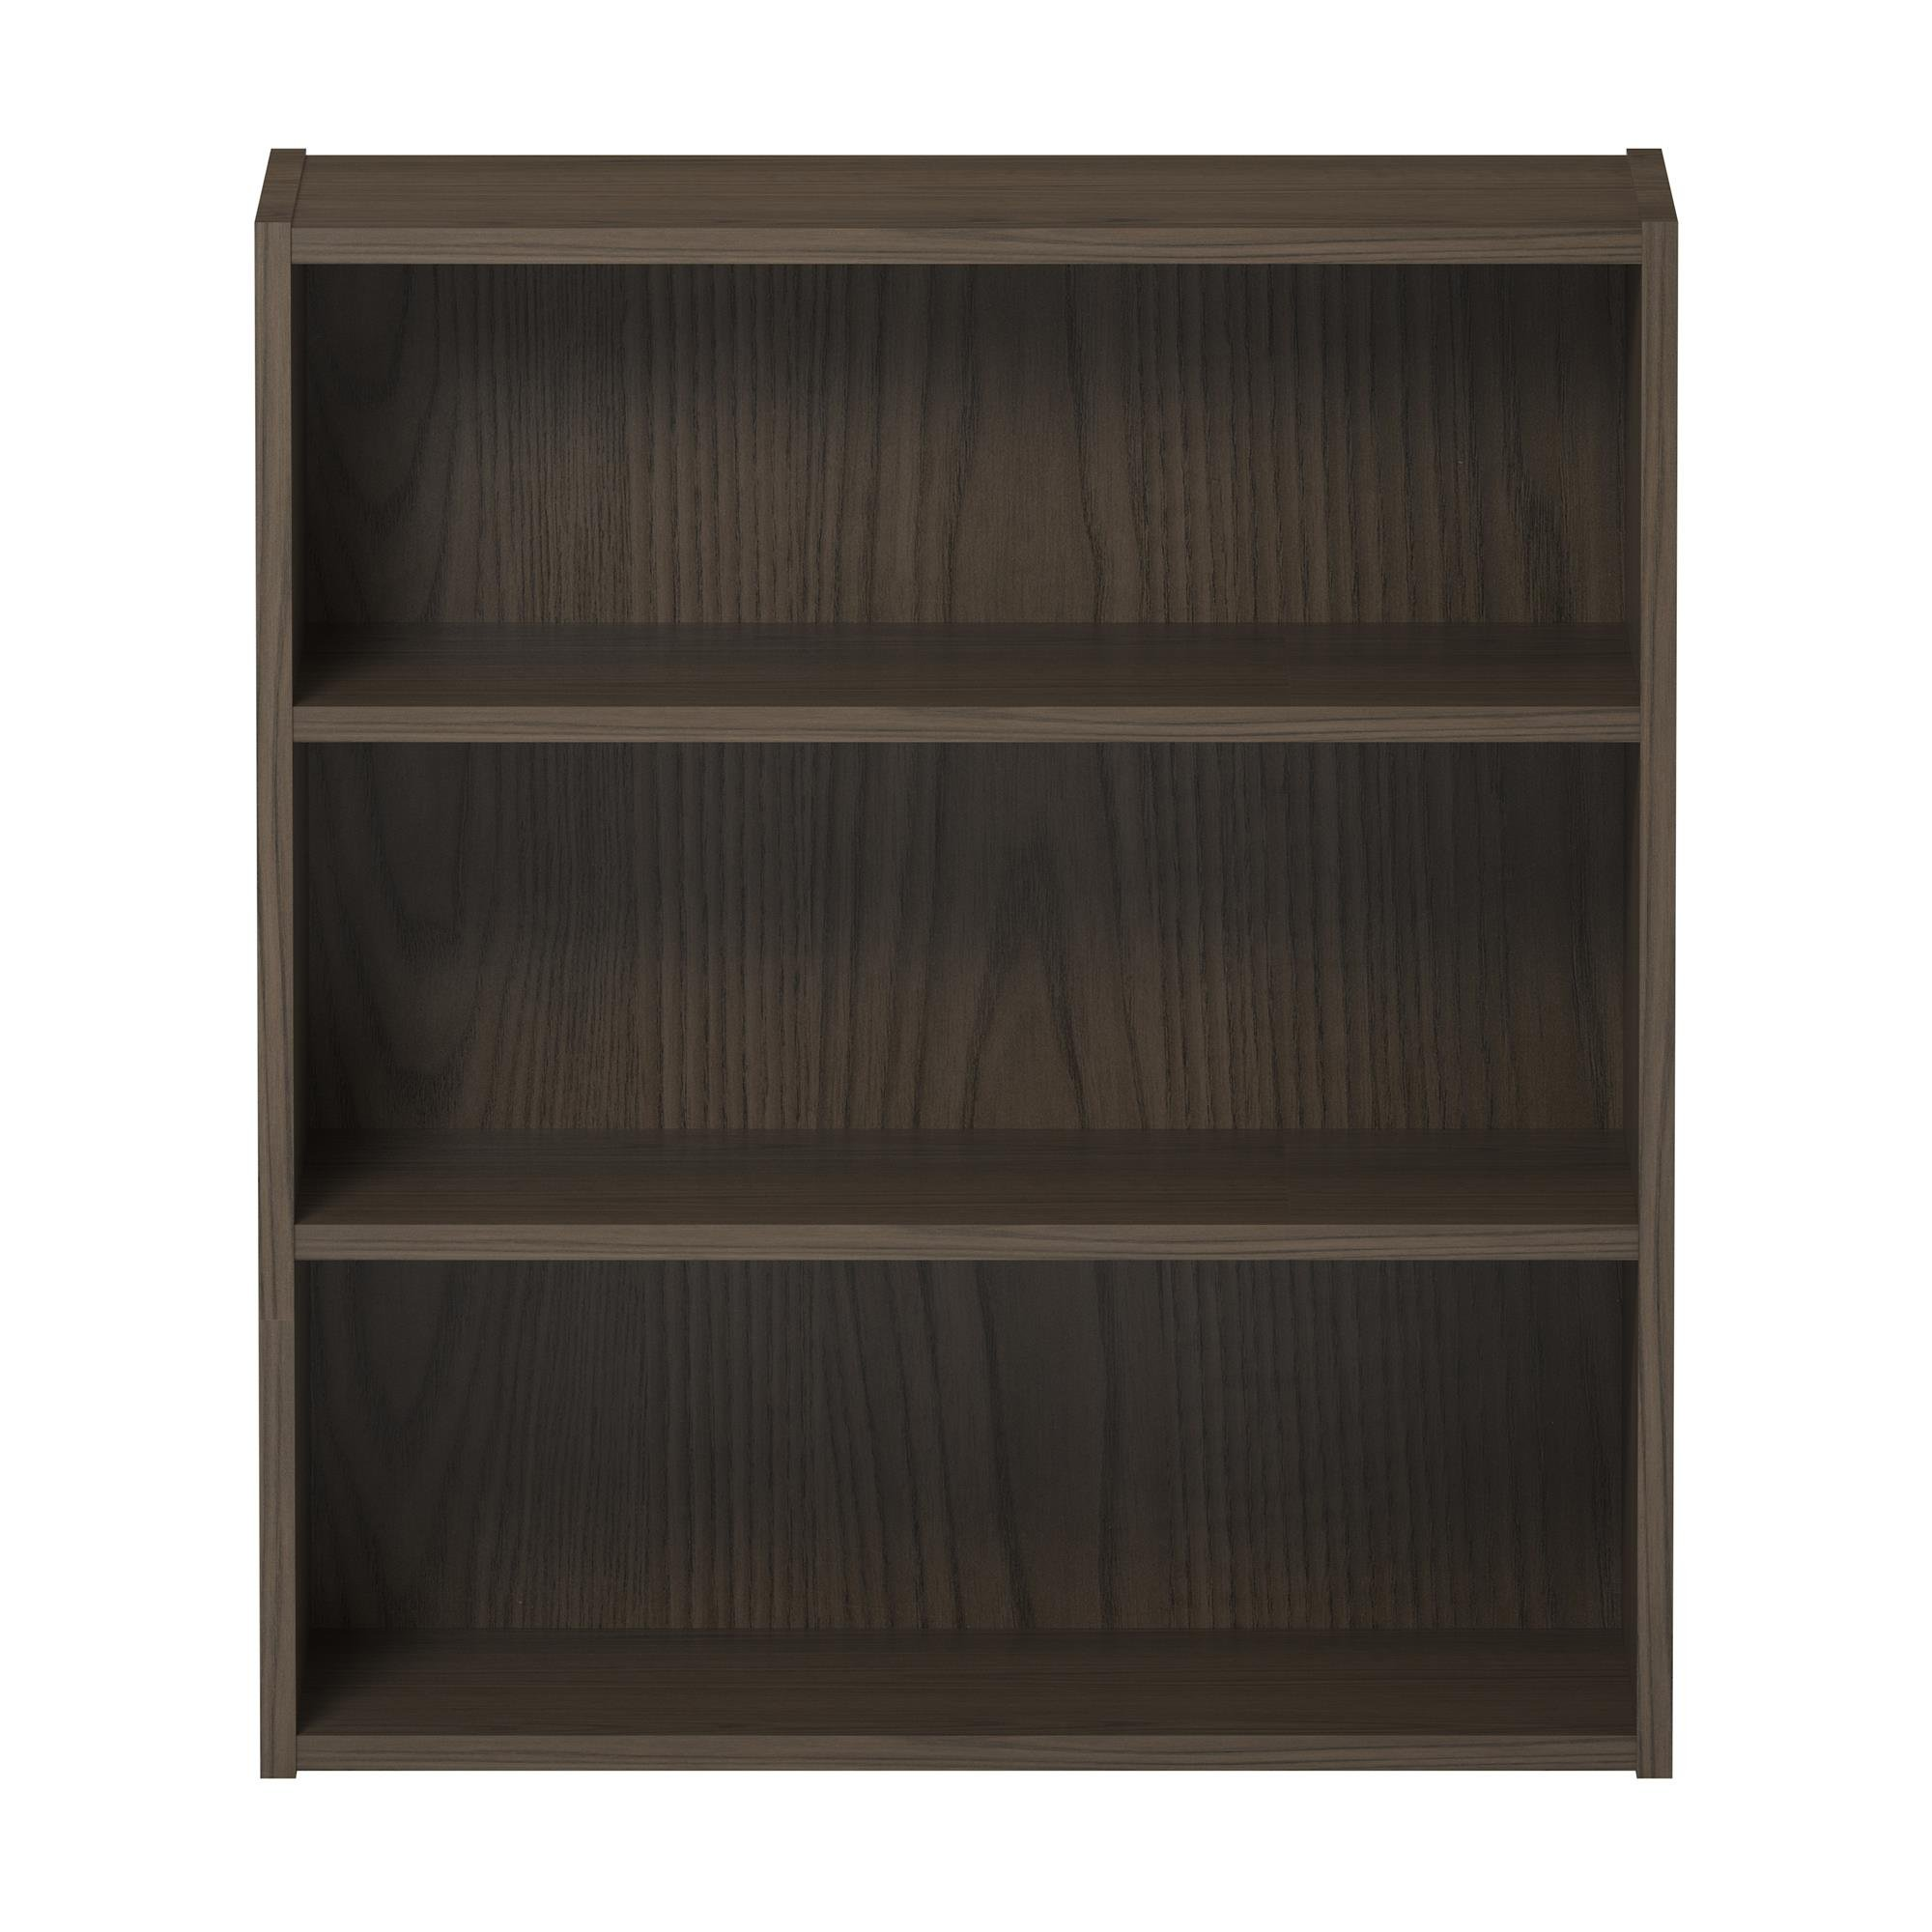 Ameriwood Basics Collection Brown Stanton Ash Tally 3 Shelf Bookcase With Two Customizable Adjustable Shelves, Made From Laminated Particleboard with Brown Stanton Ash Finish